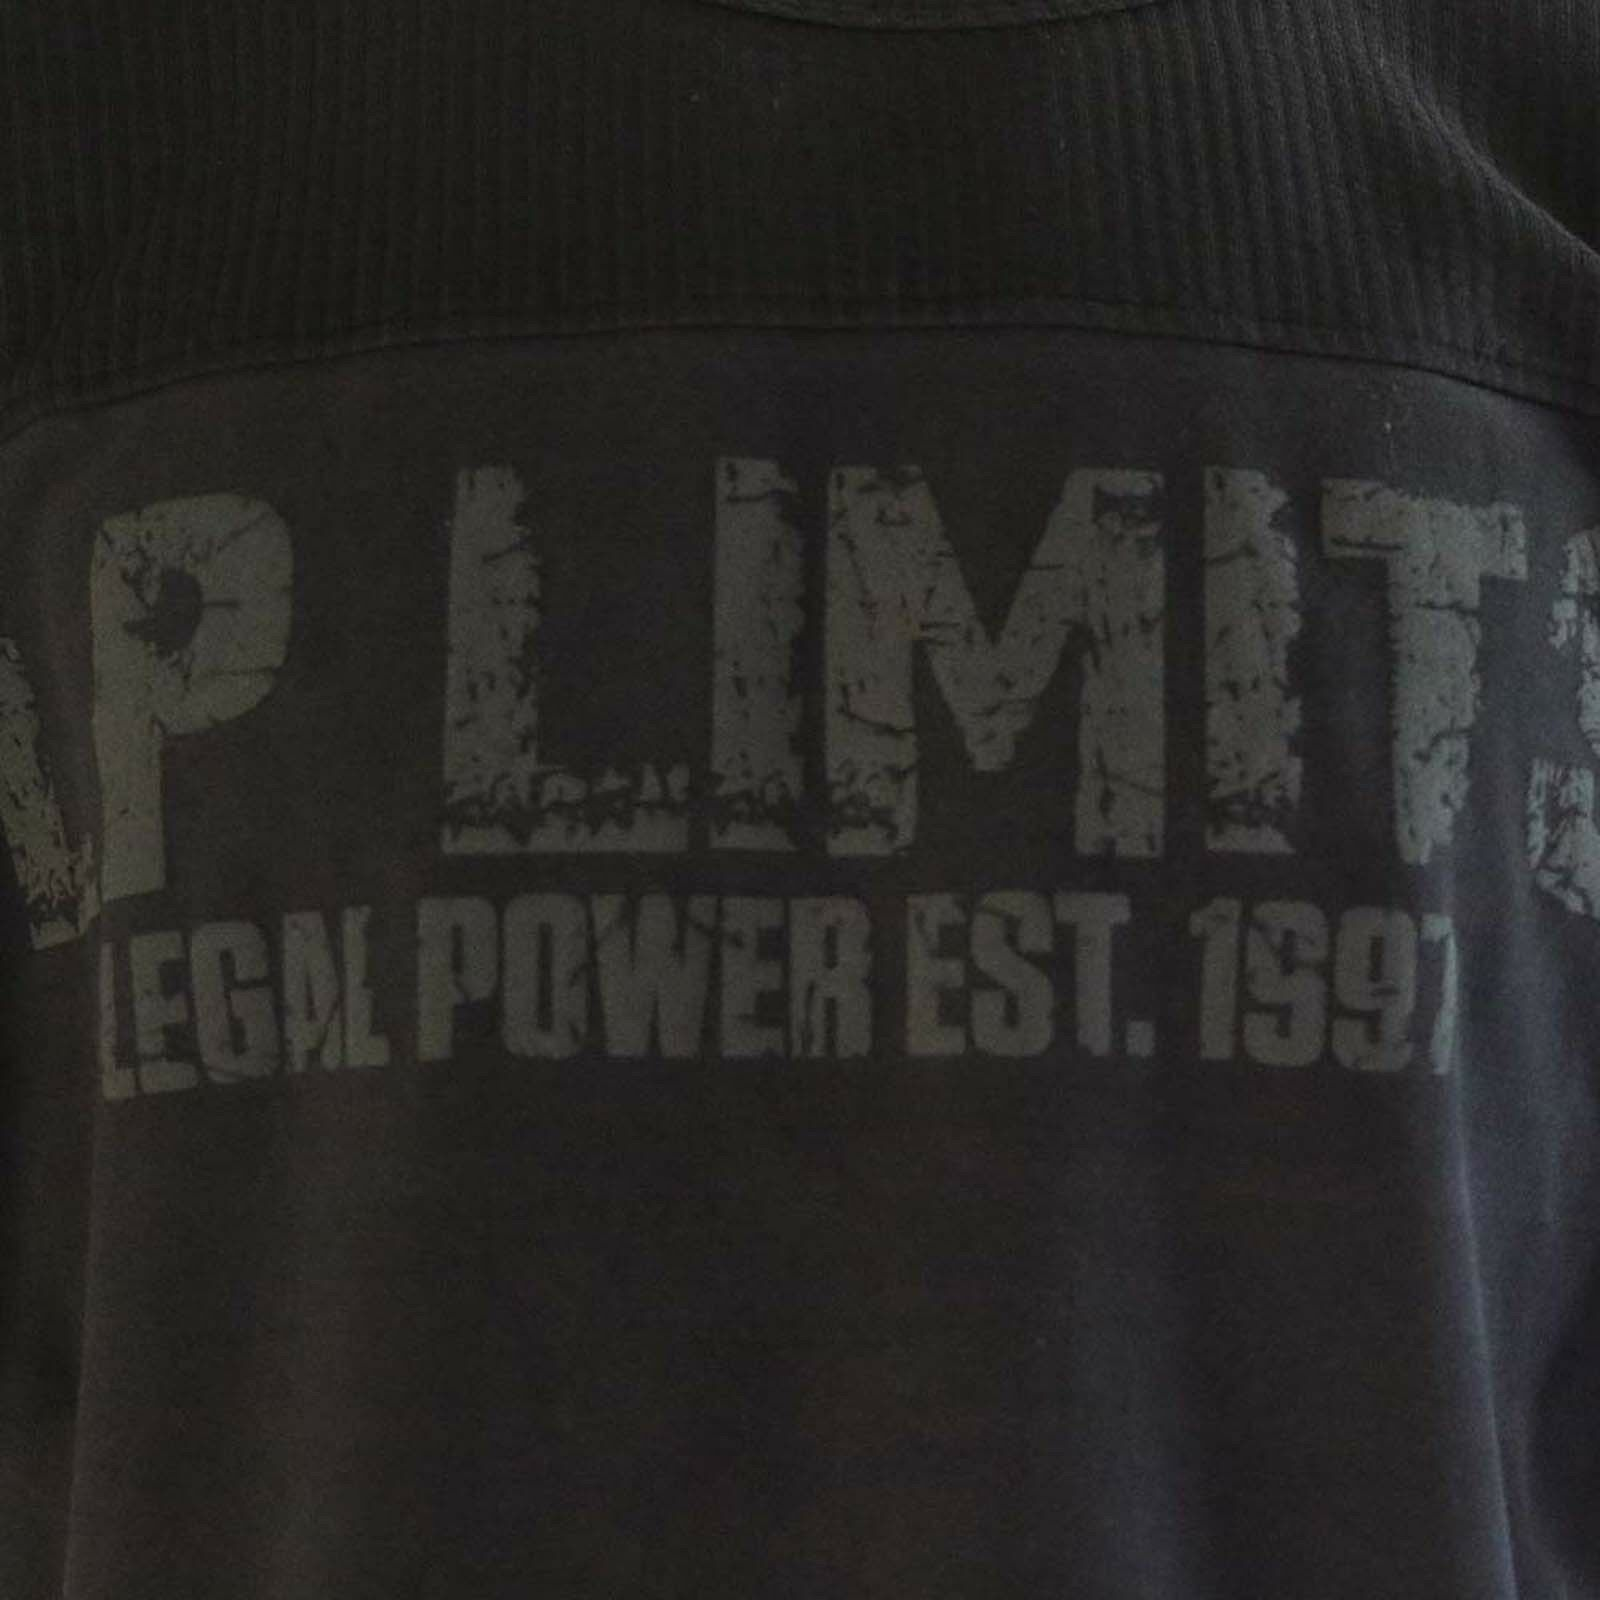 Legal Legal Legal Power LP Limits Shirt Ottobos Baumwolle 320g m² kurzarm 2000-864 405 d34595